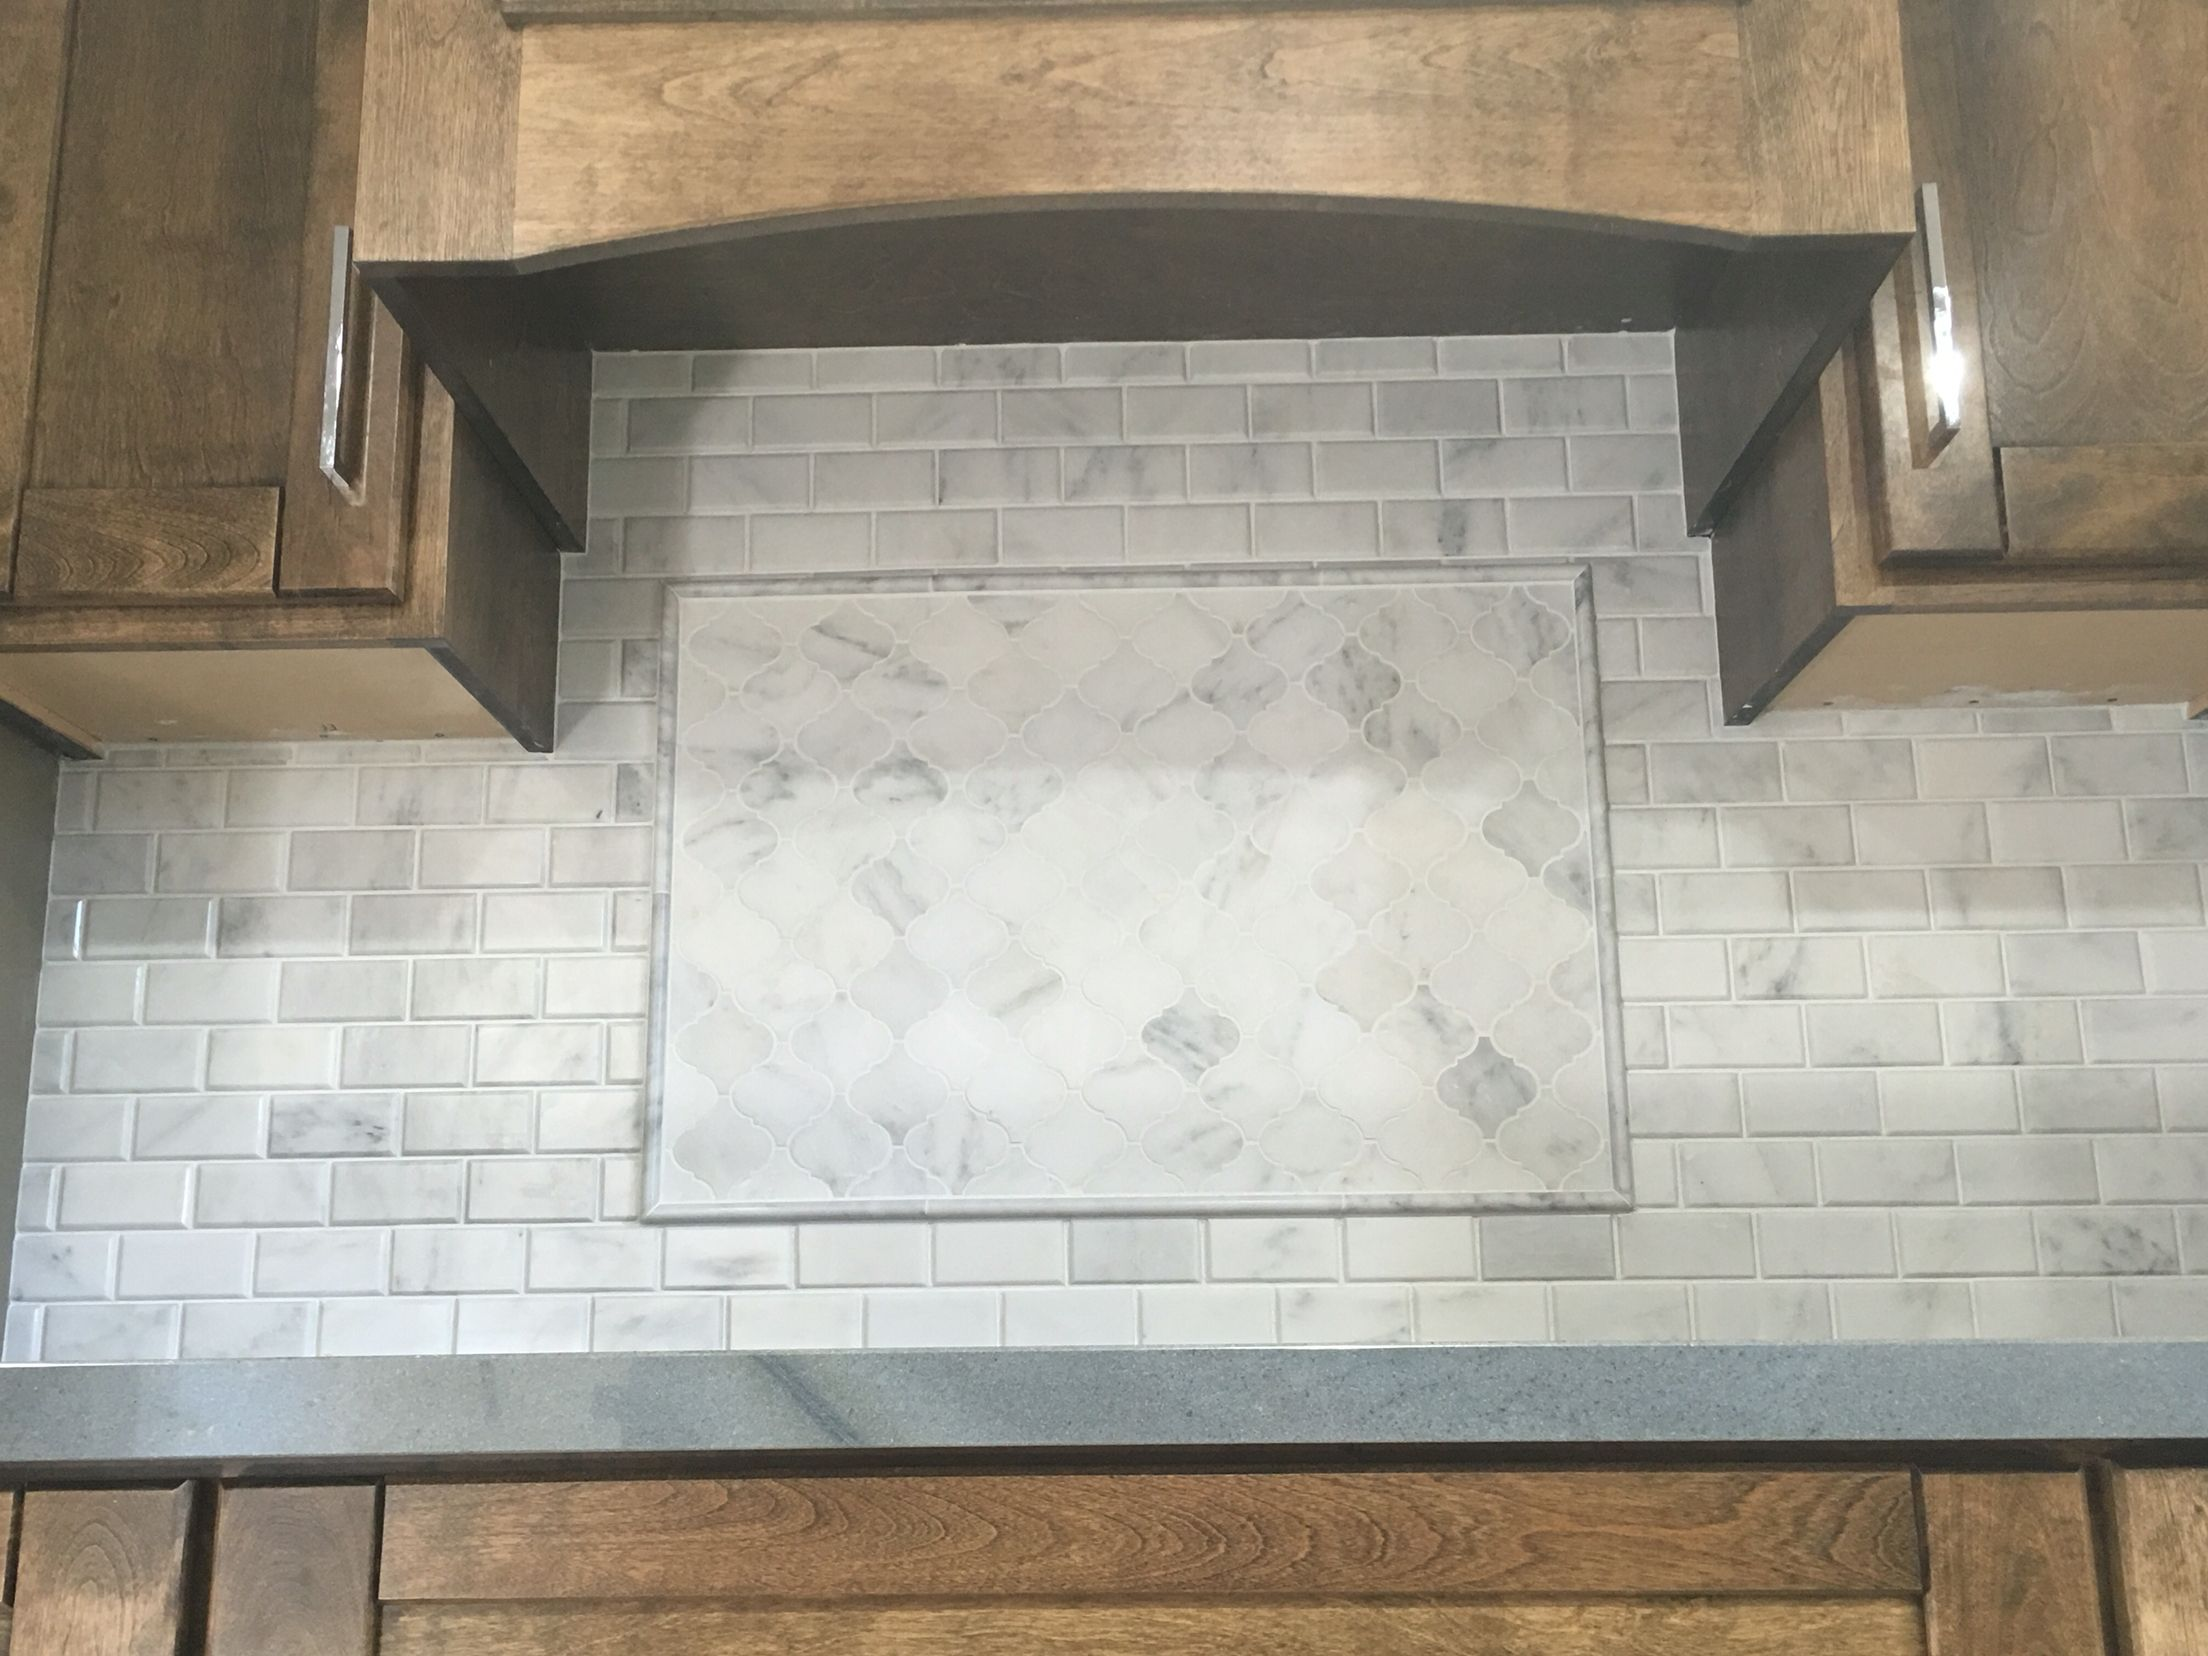 Wwwtilebar Kitchen Backsplash Carrera Subway Tile Arabesque Lantern Mosaic